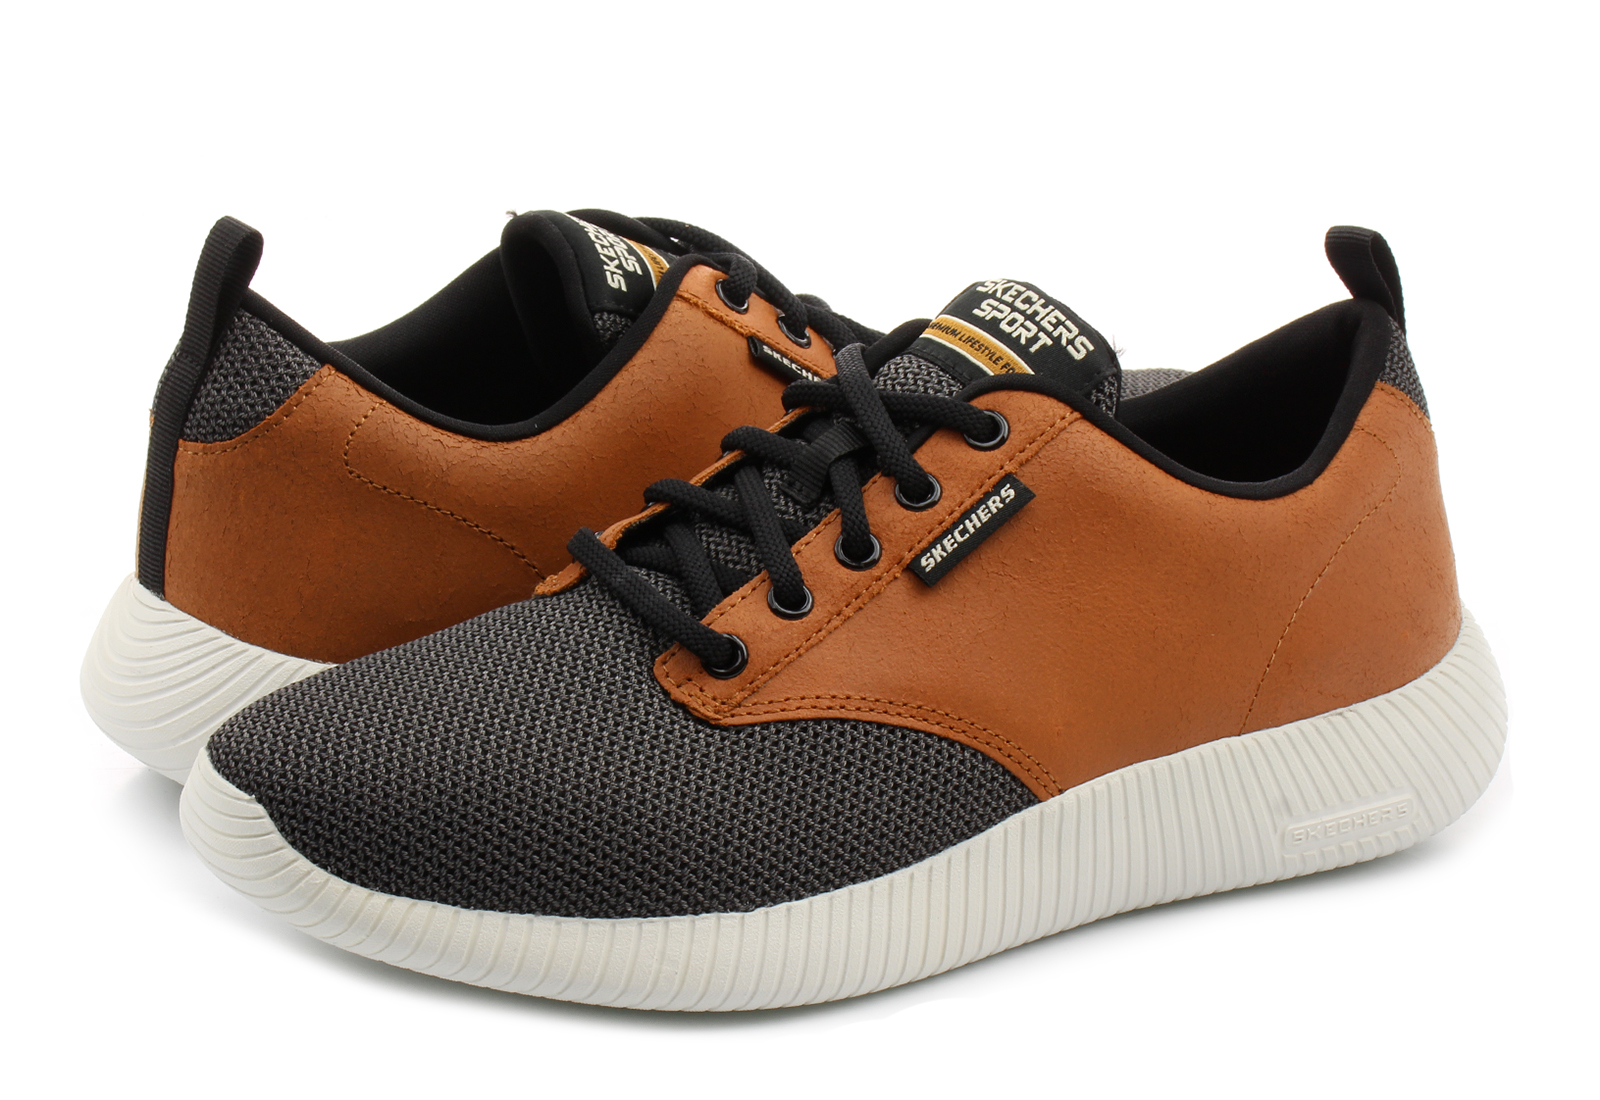 Skechers Shoes - Depth Charge - Trahan - 52398-wtbk - Online shop ... 58a084cd39